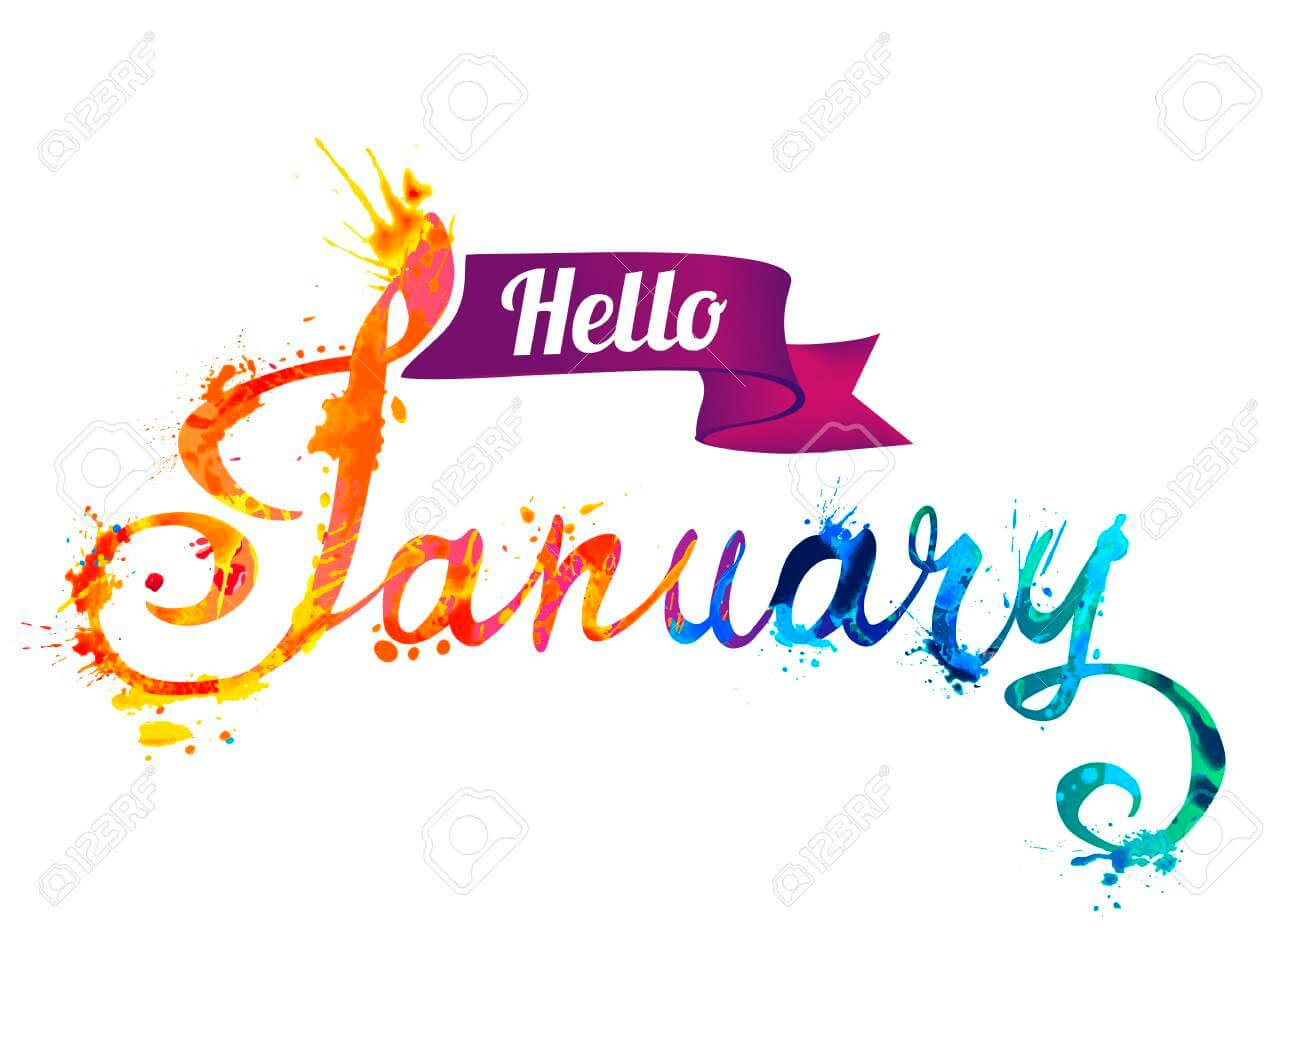 Month January 2019 January Clipart.